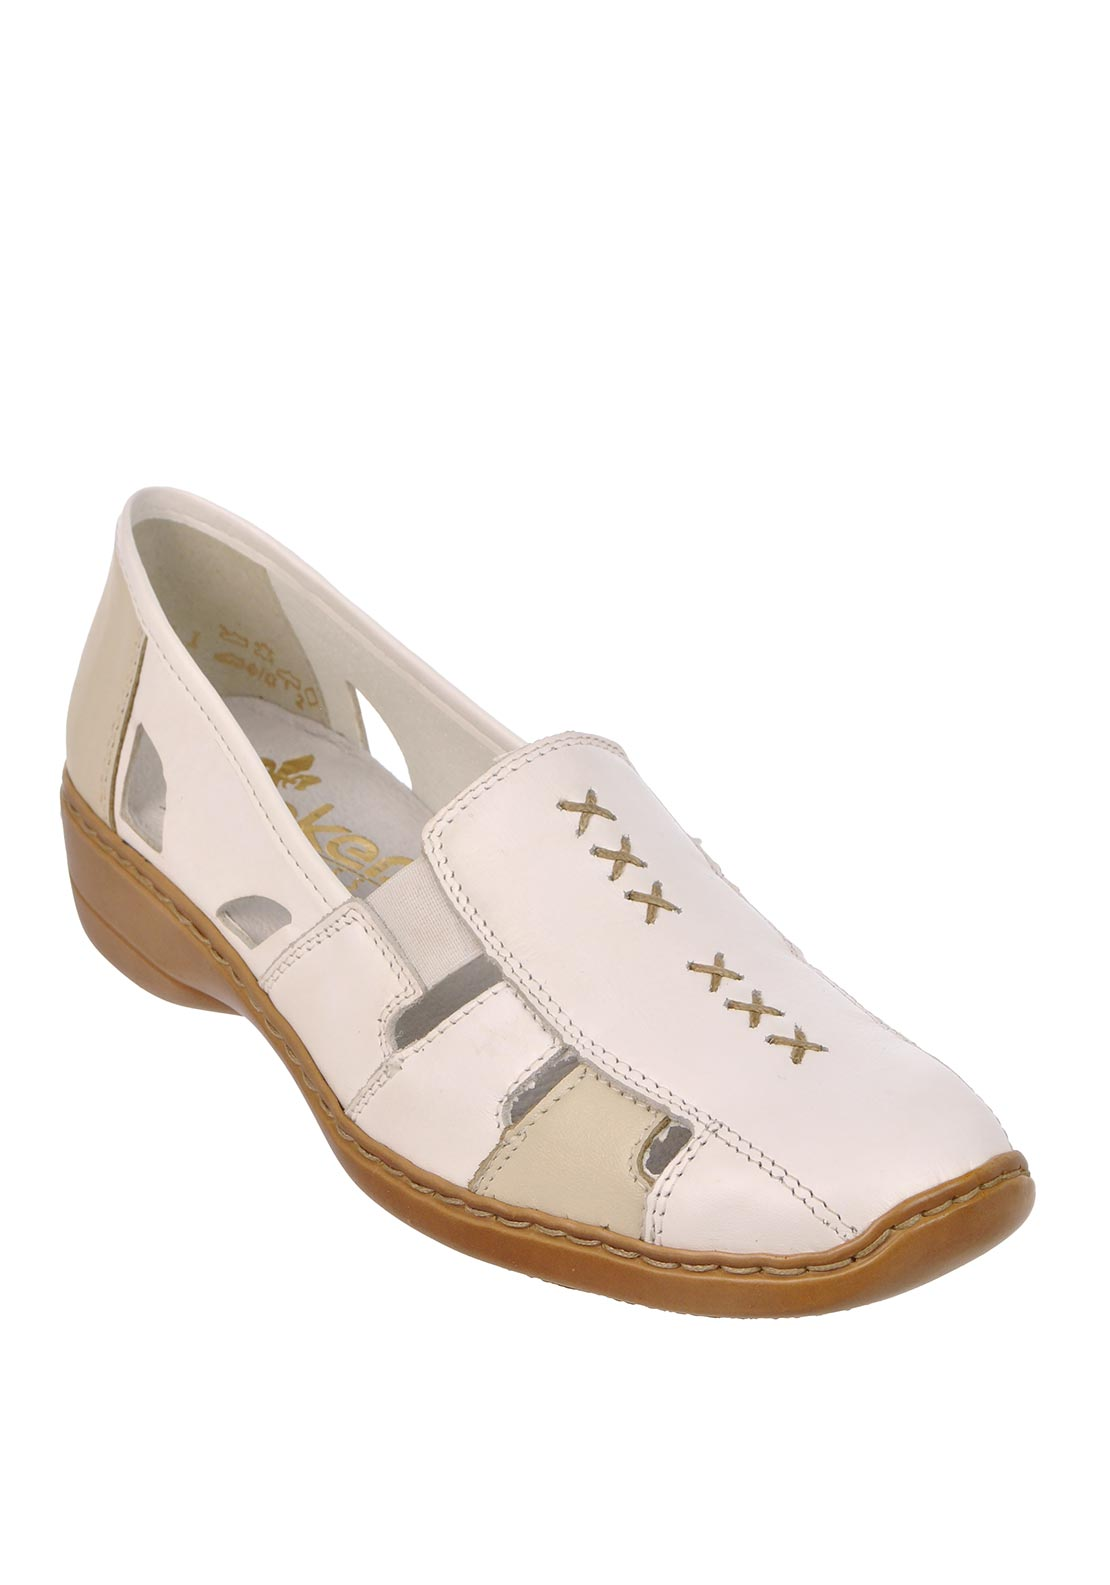 Rieker Womens Cut out leather Shoe, Off White